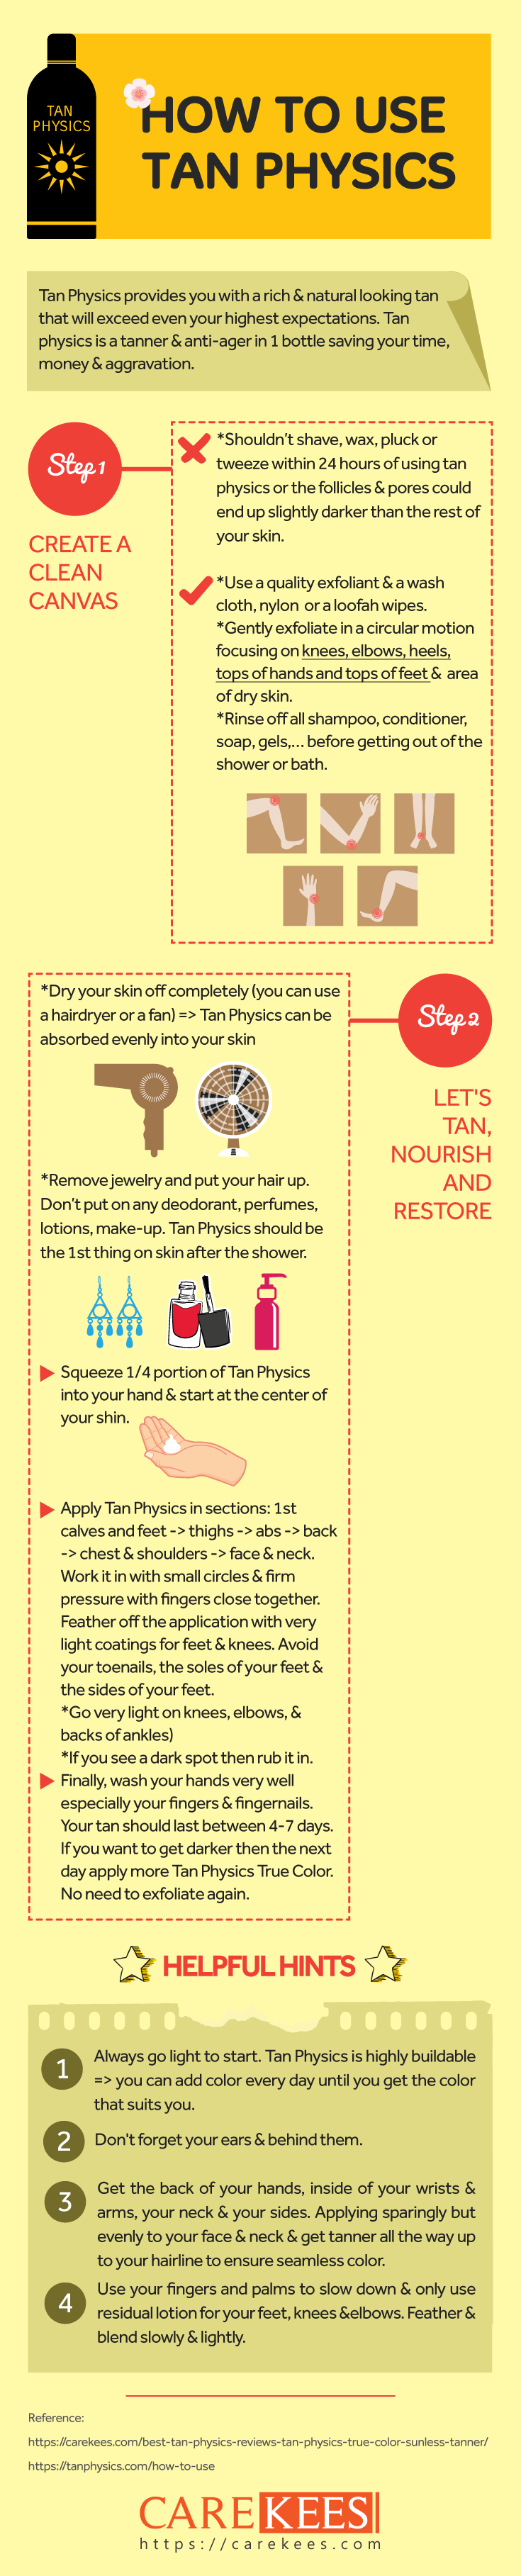 how to use tan physics